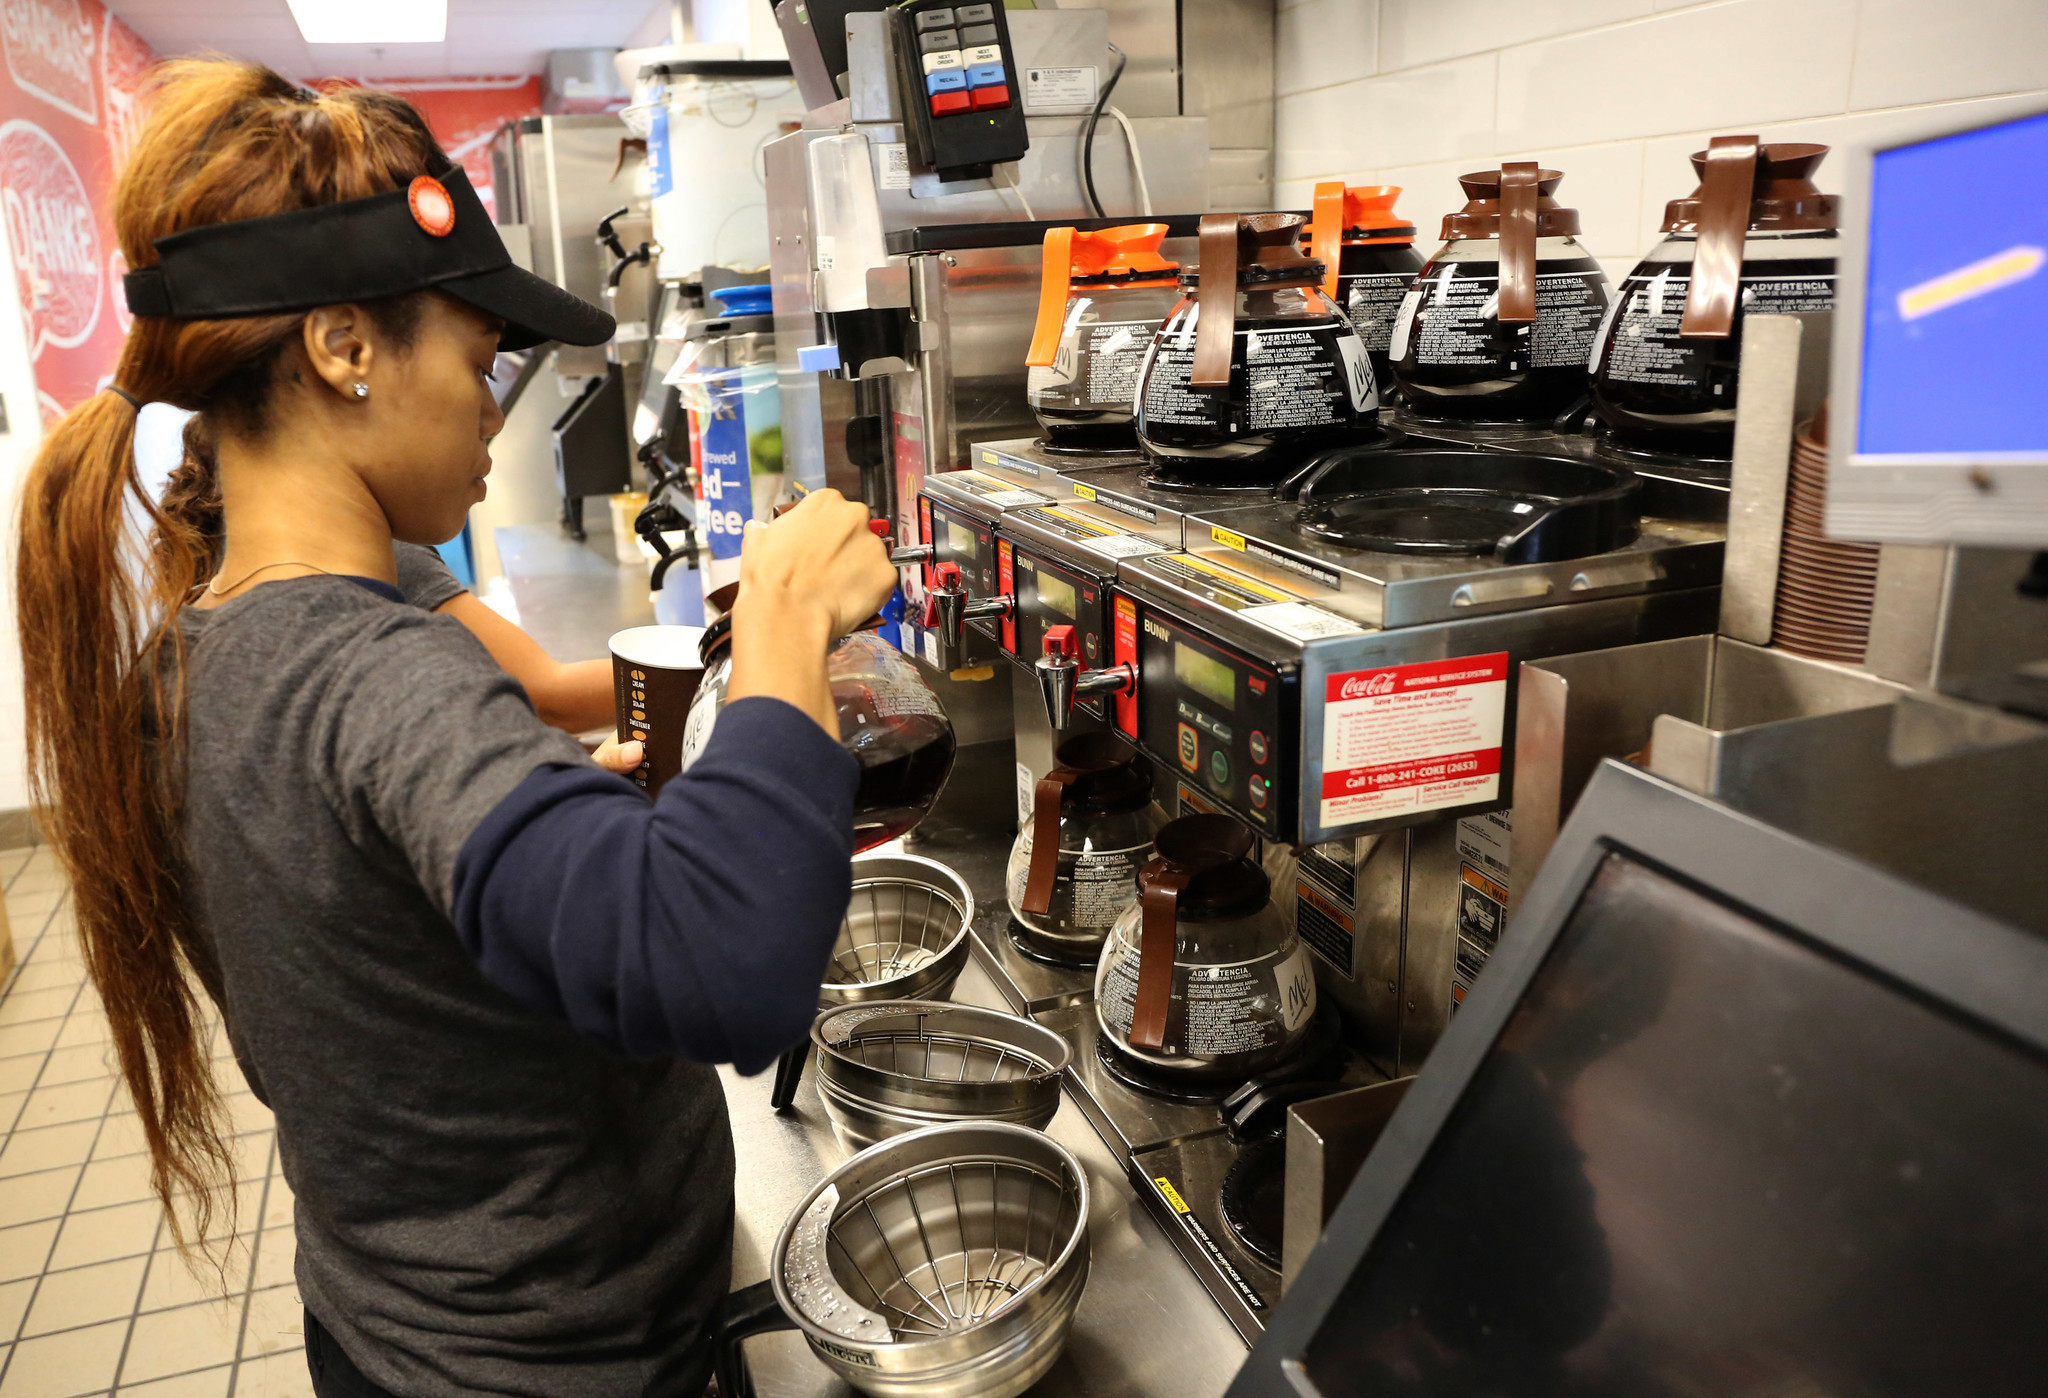 McDonald's is moving to sustainable coffee in latest menu ...